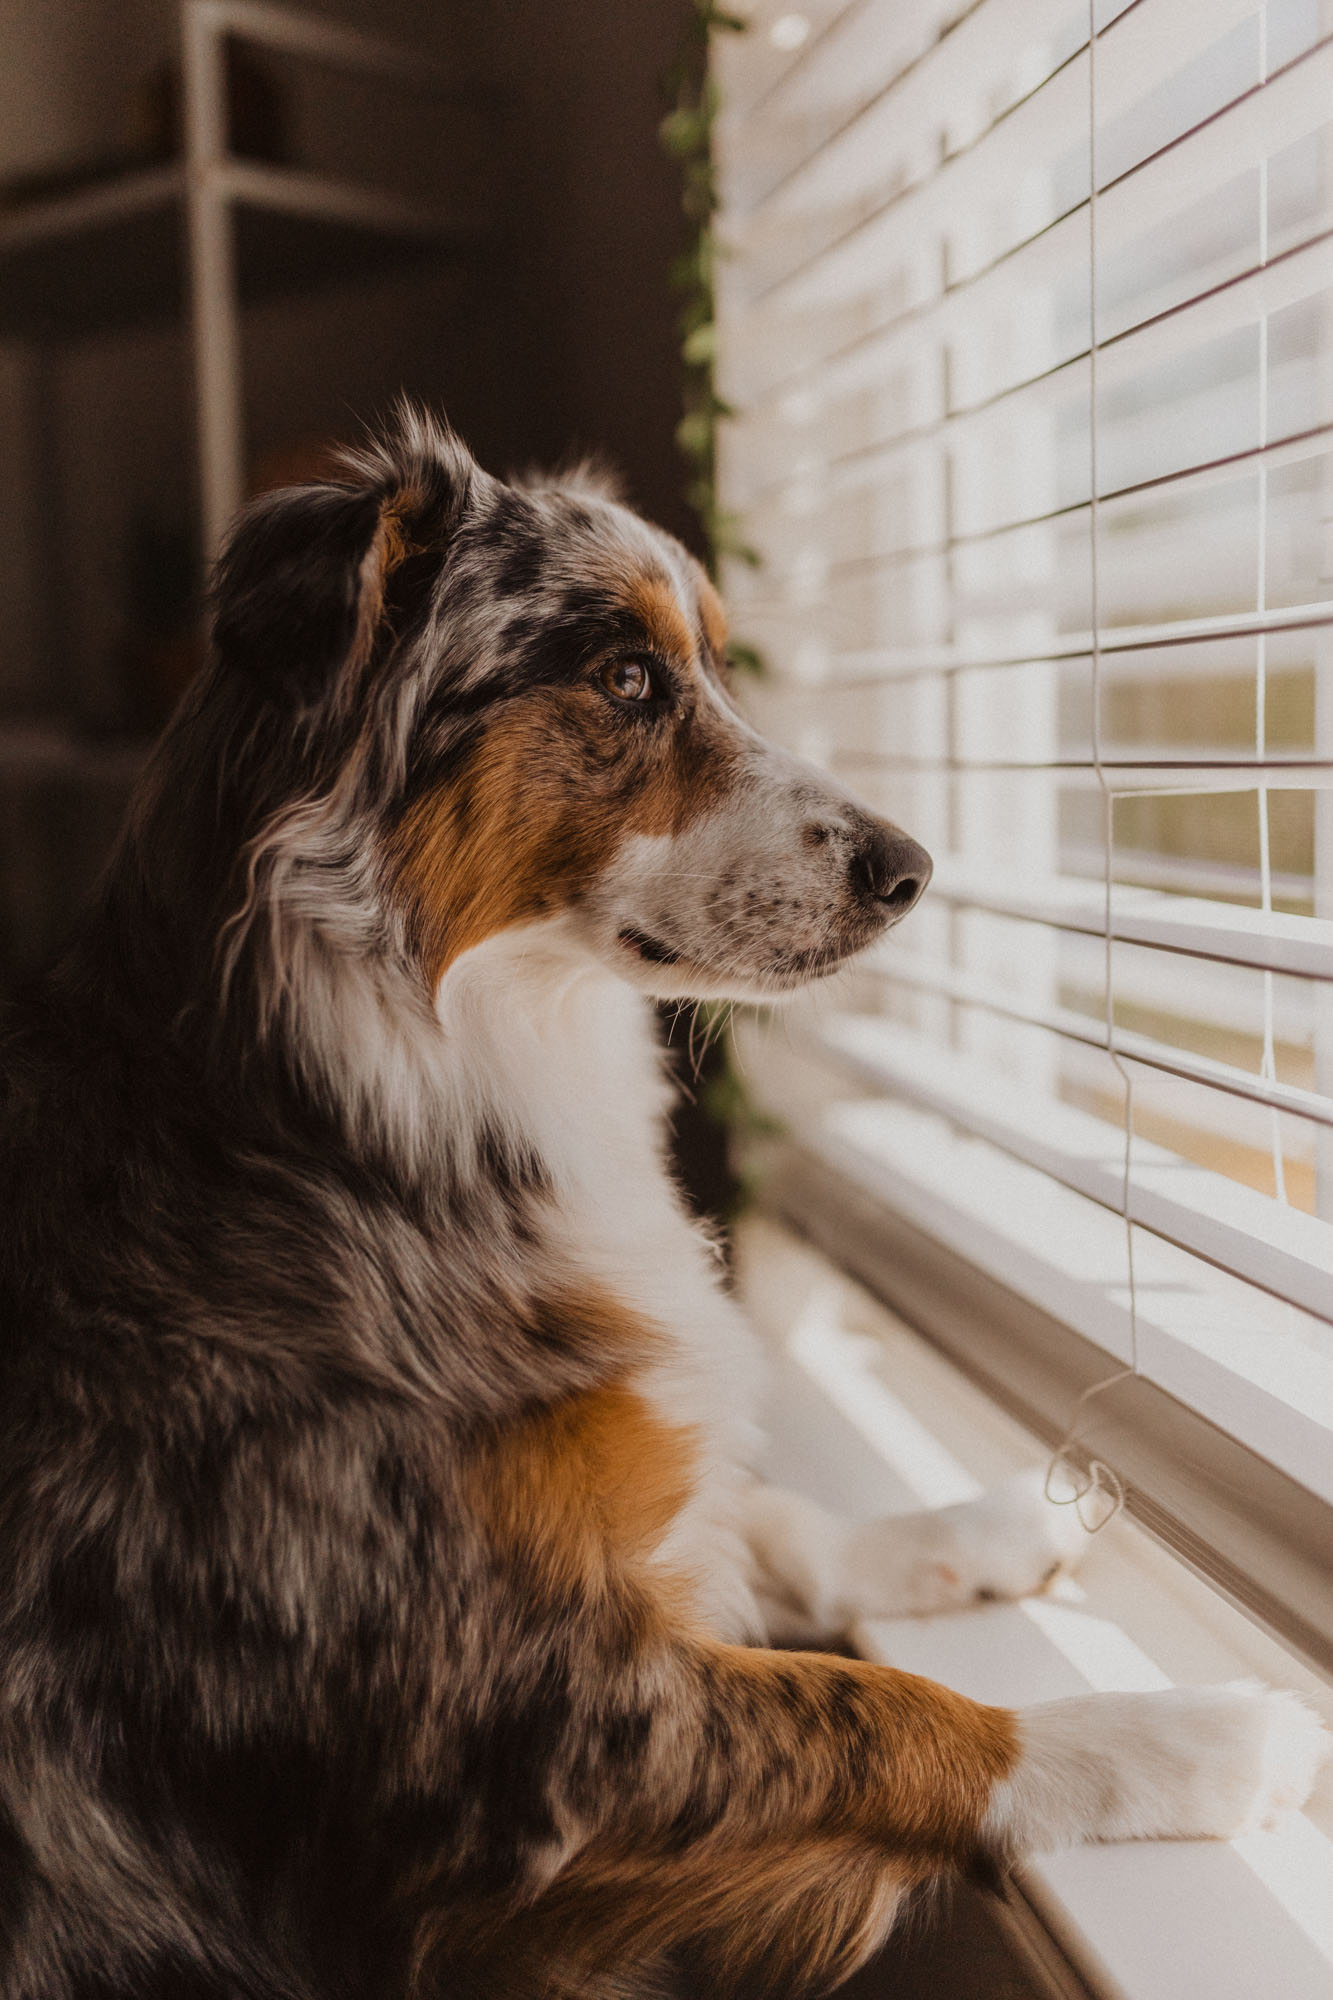 Cute puppy looking out a bright window